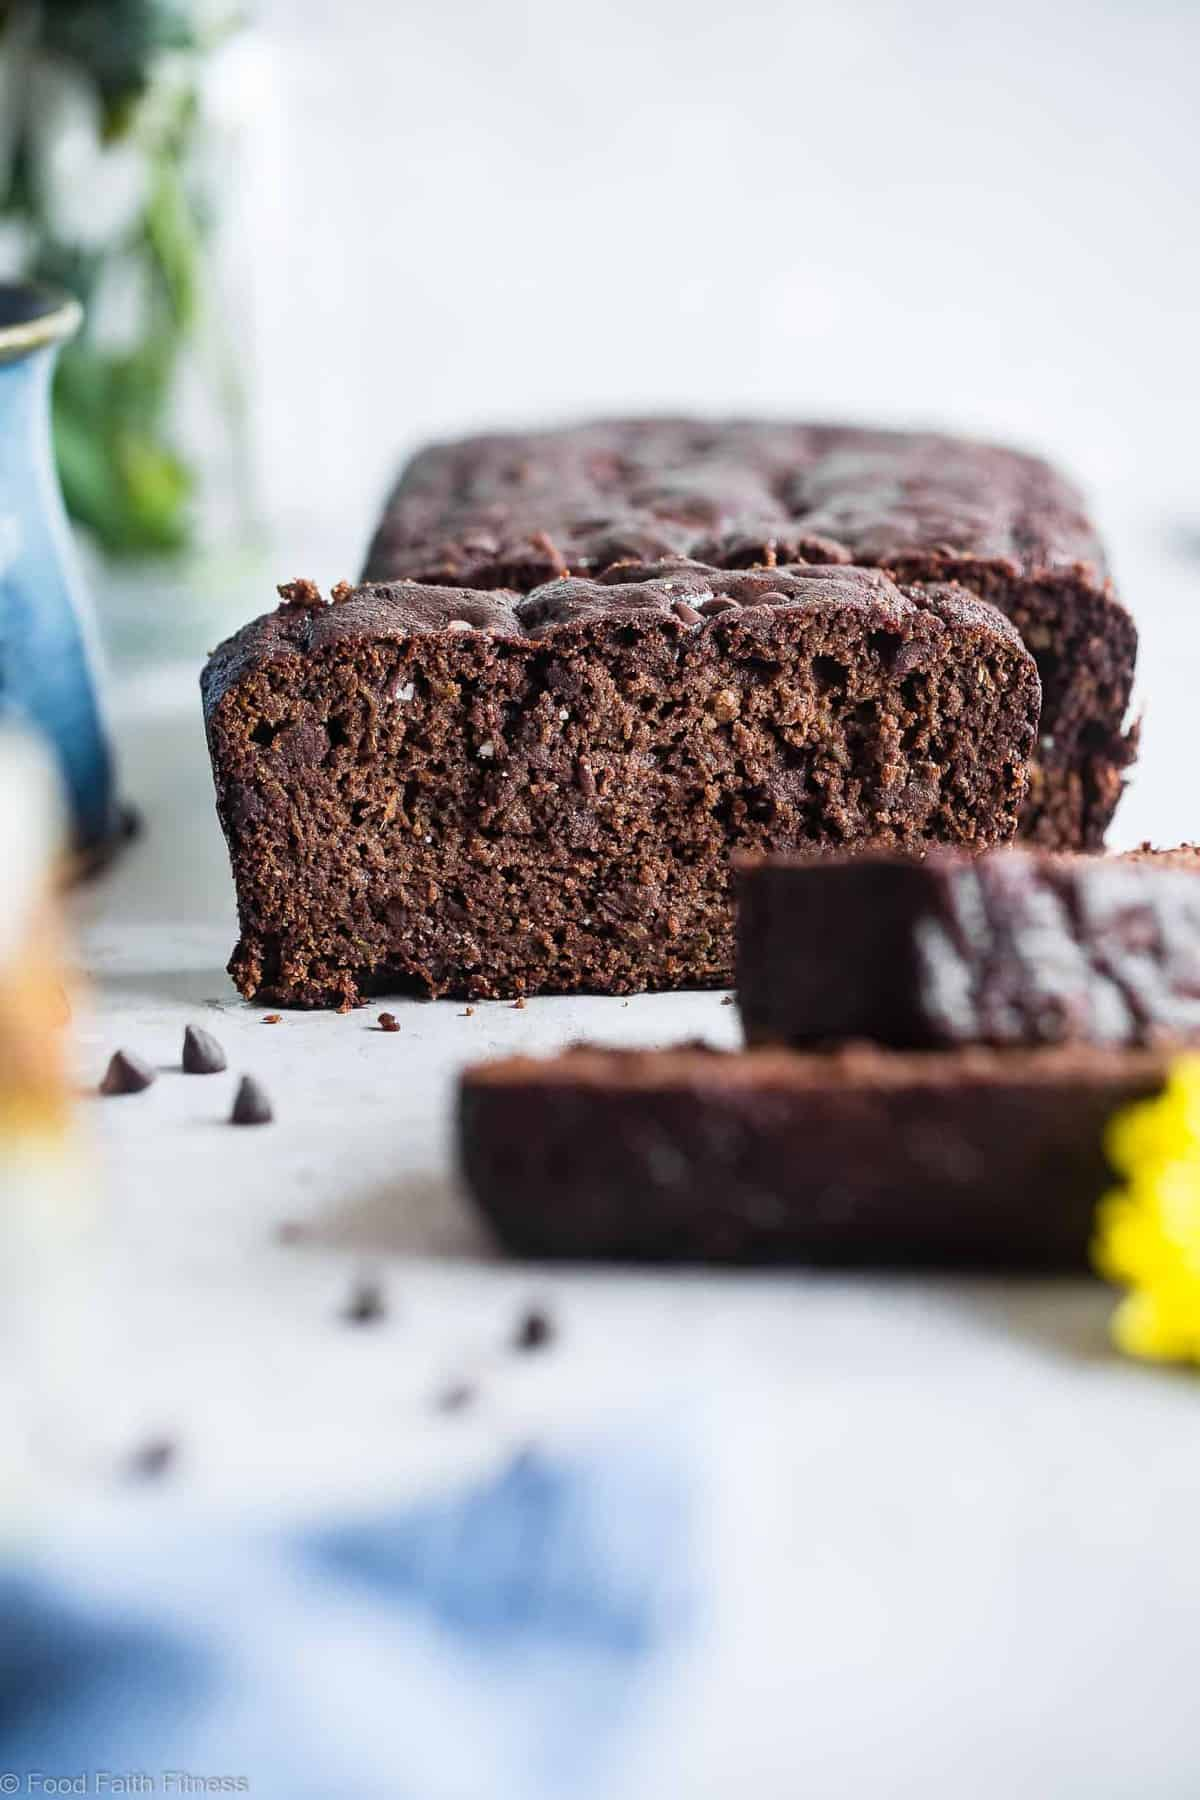 Easy Healthy Chocolate Paleo Zucchini Bread - This gluten free zucchini bread is secretly packed with protein and collagen to support healthy skin and bones! It's a healthy, breakfast or snack for kids and adults, and freezes great! | #Foodfaithfitness | #FoodFaithFit | #Paleo #Glutenfree #Collagen #Chocolate #Healthy